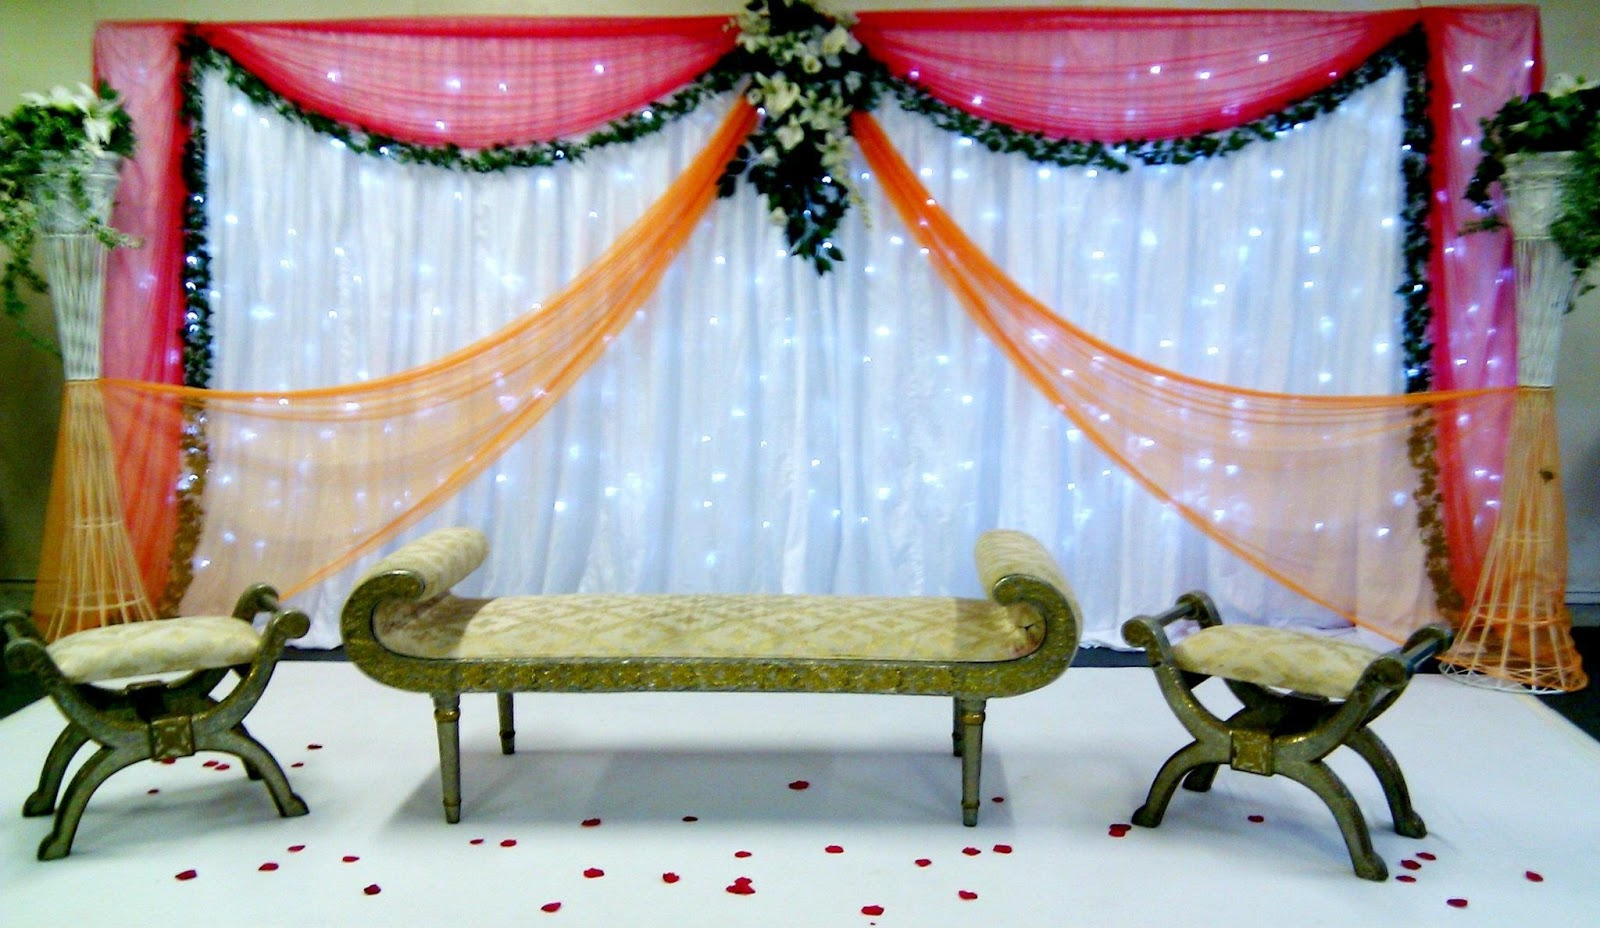 Mehndi night decorated stages trends in pakistan